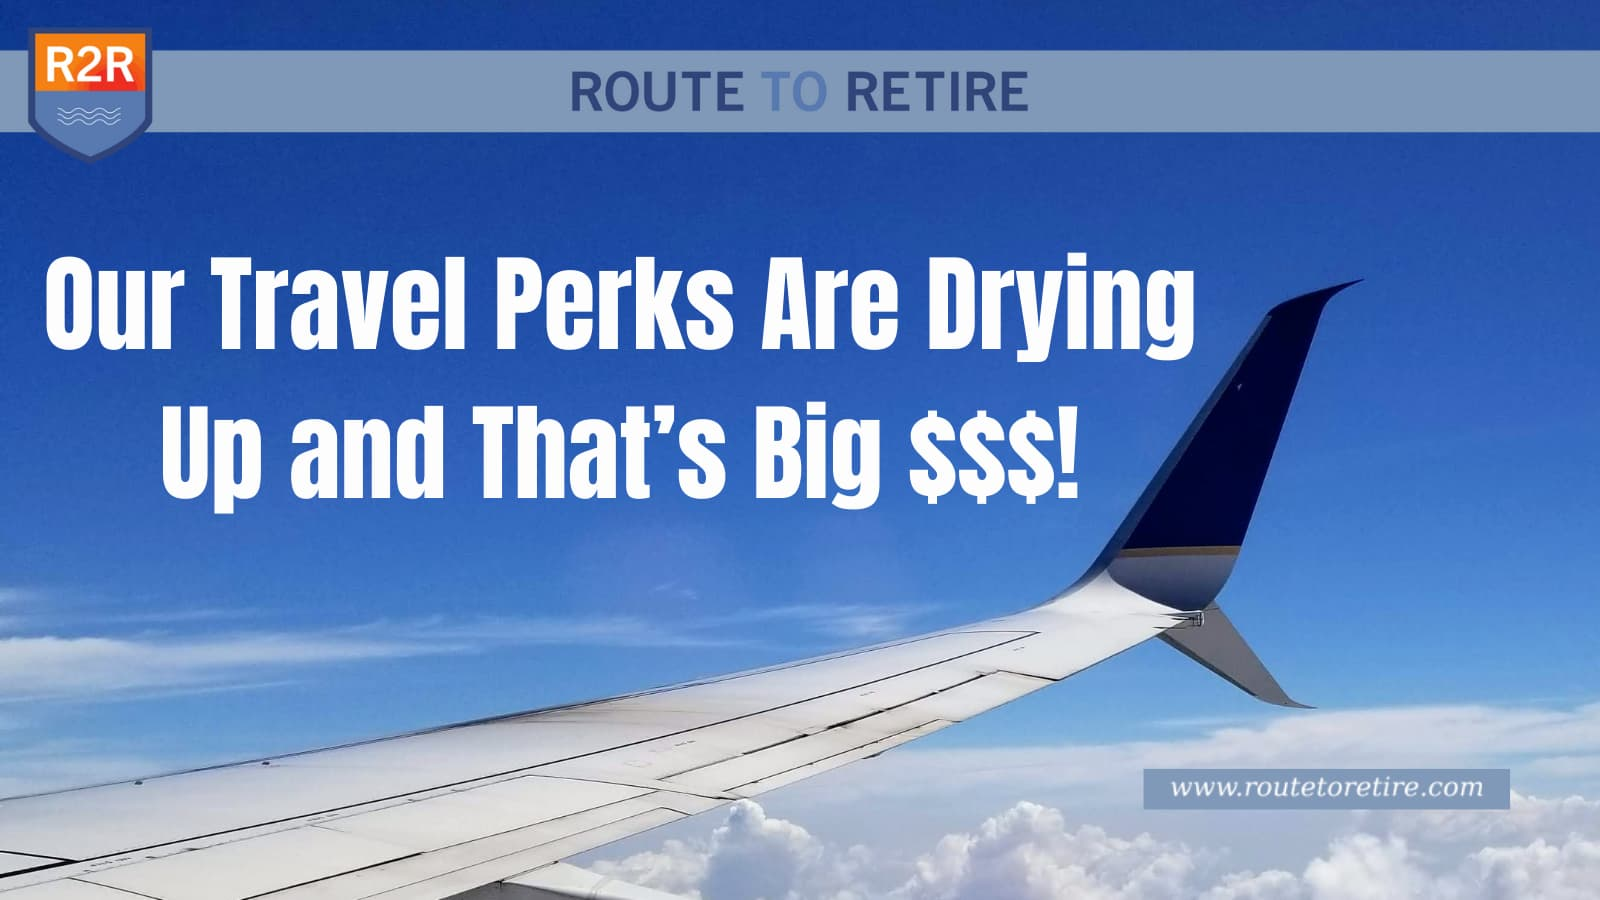 Our Travel Perks Are Drying Up and That's Big $$$!